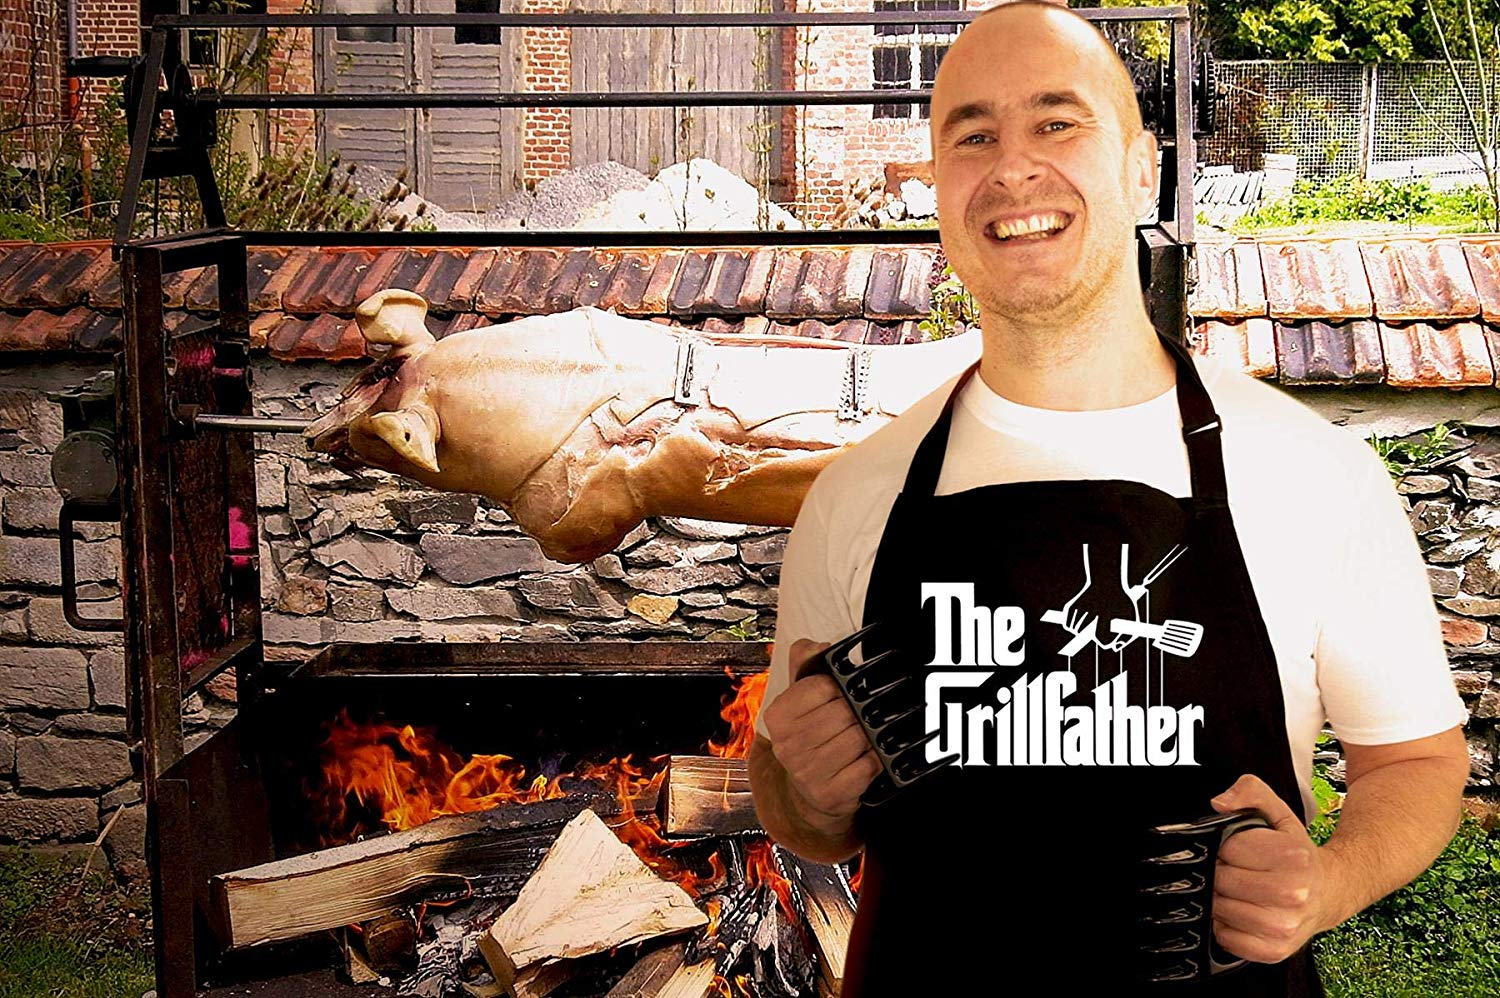 BBQ Apron Funny Grill Aprons for Men The Grillfather